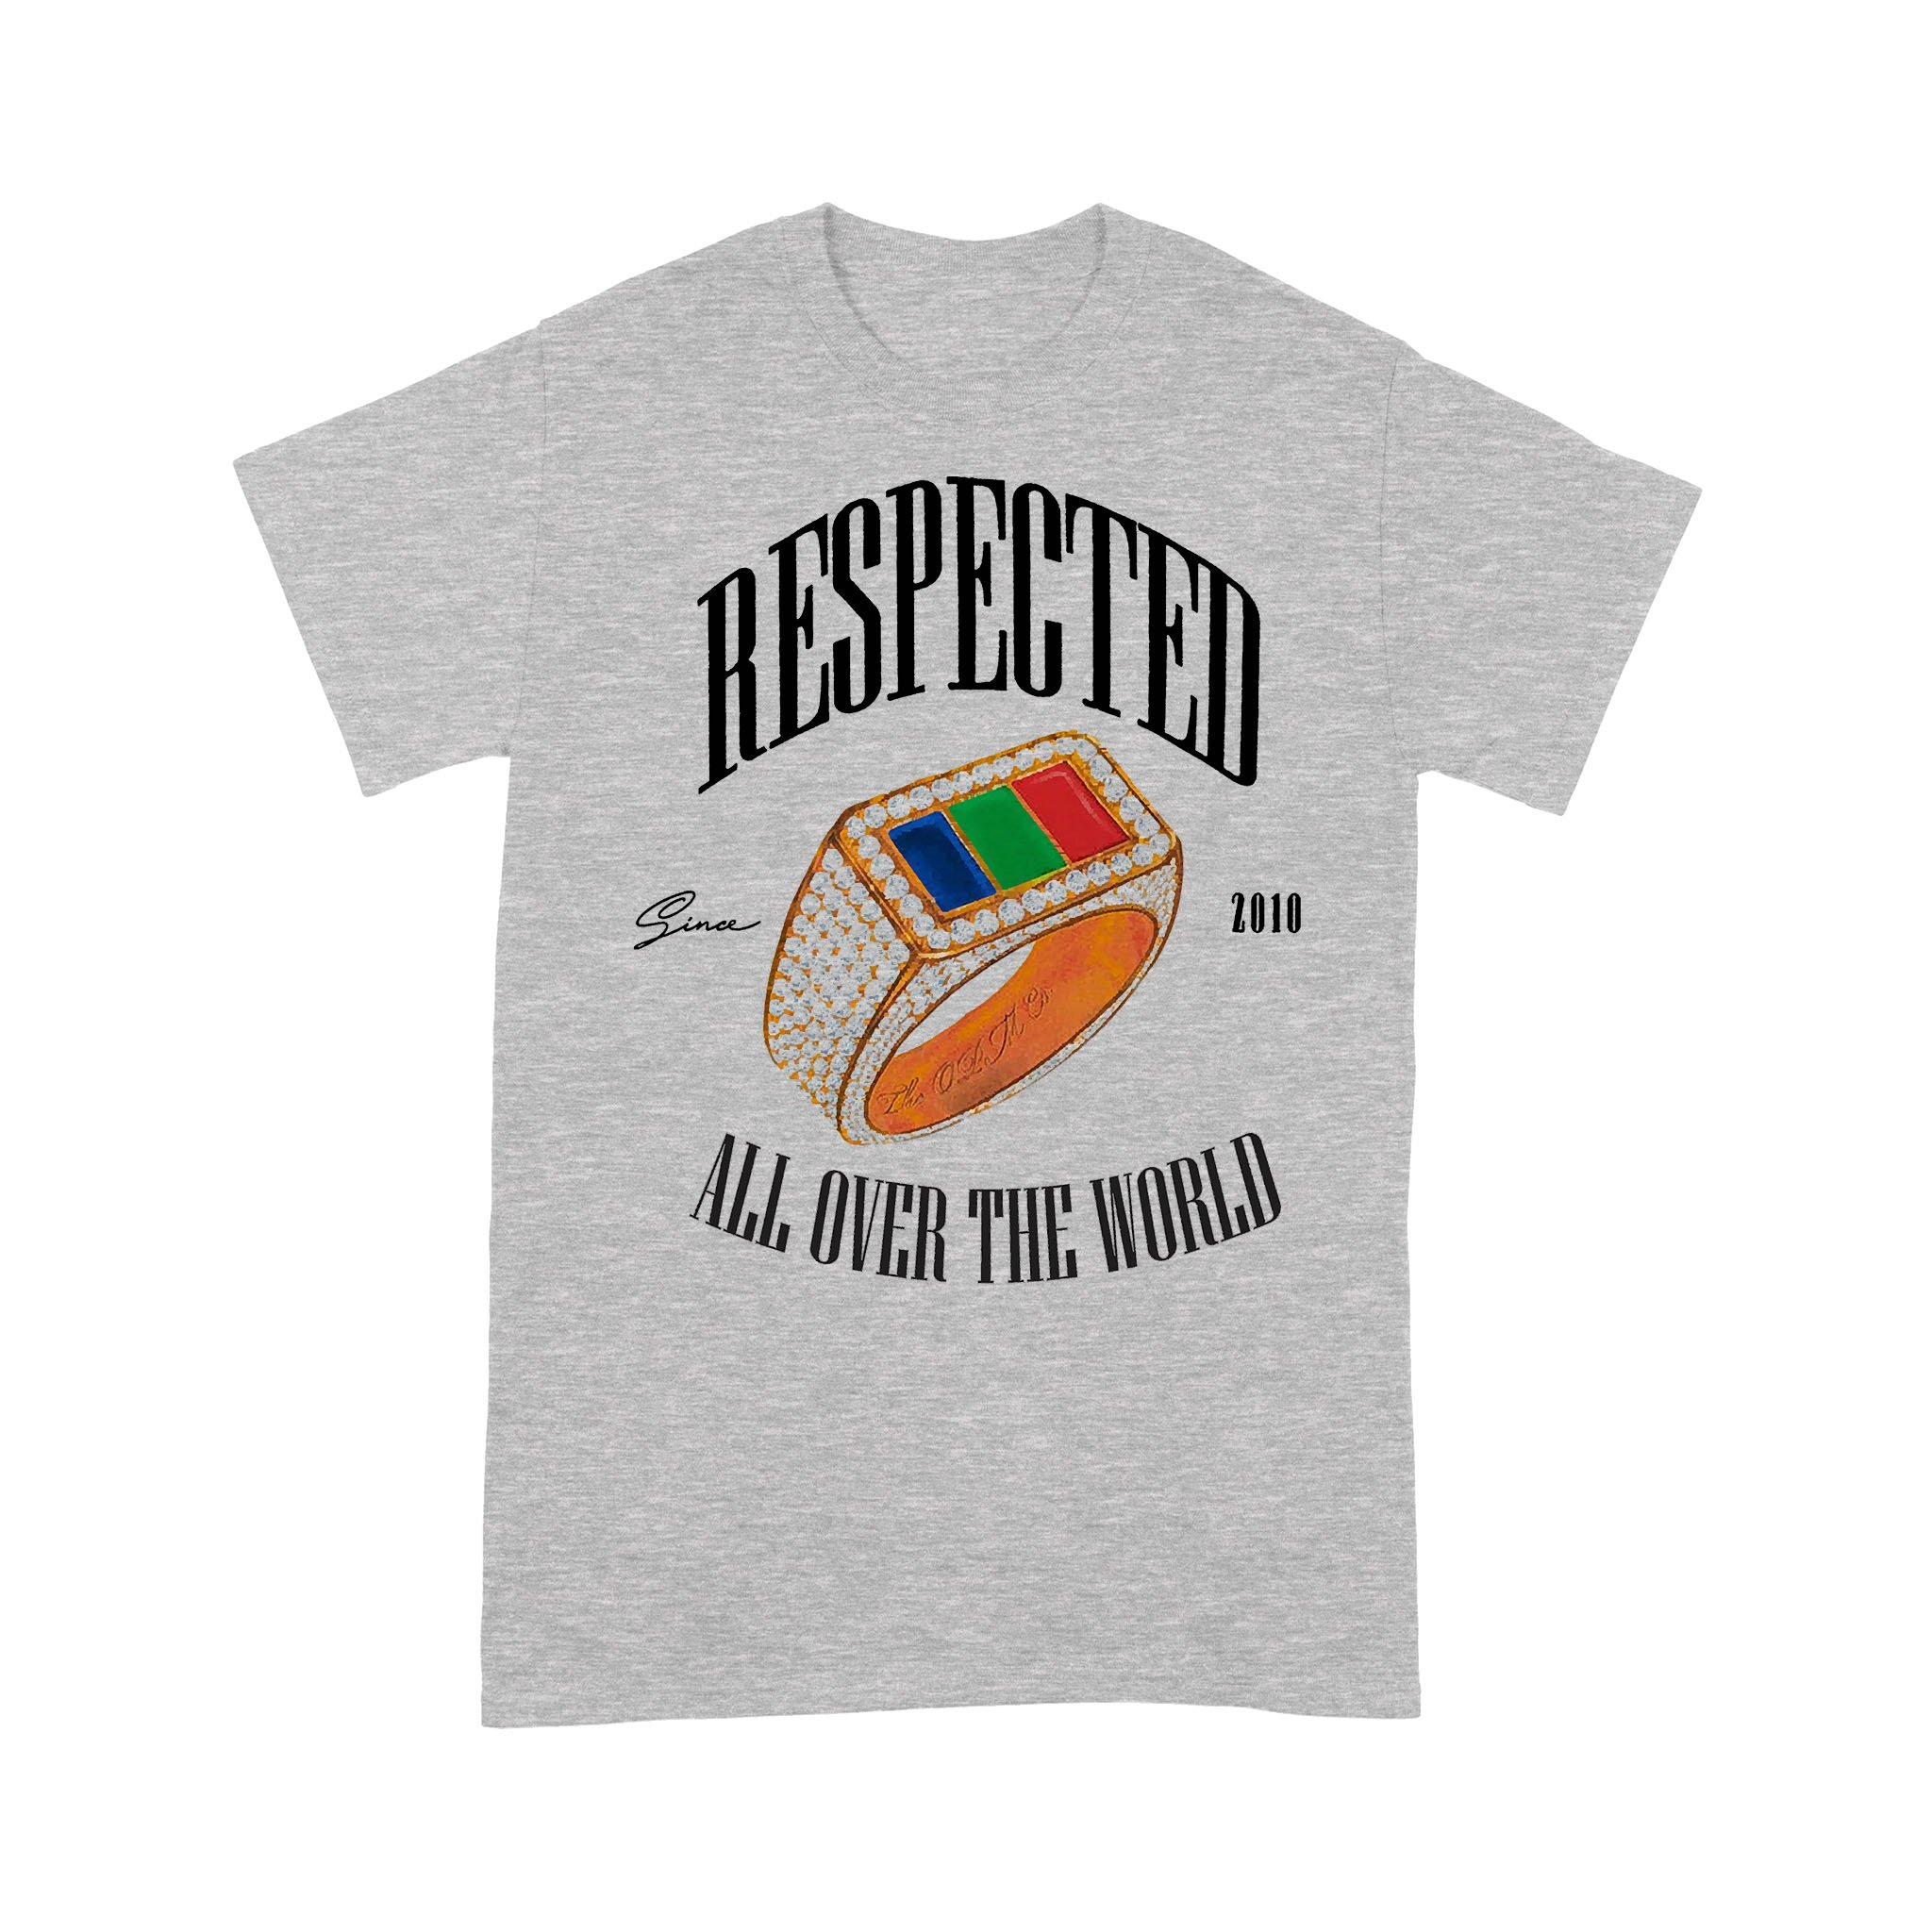 Respected All Over The World Since 2010 T-shirt